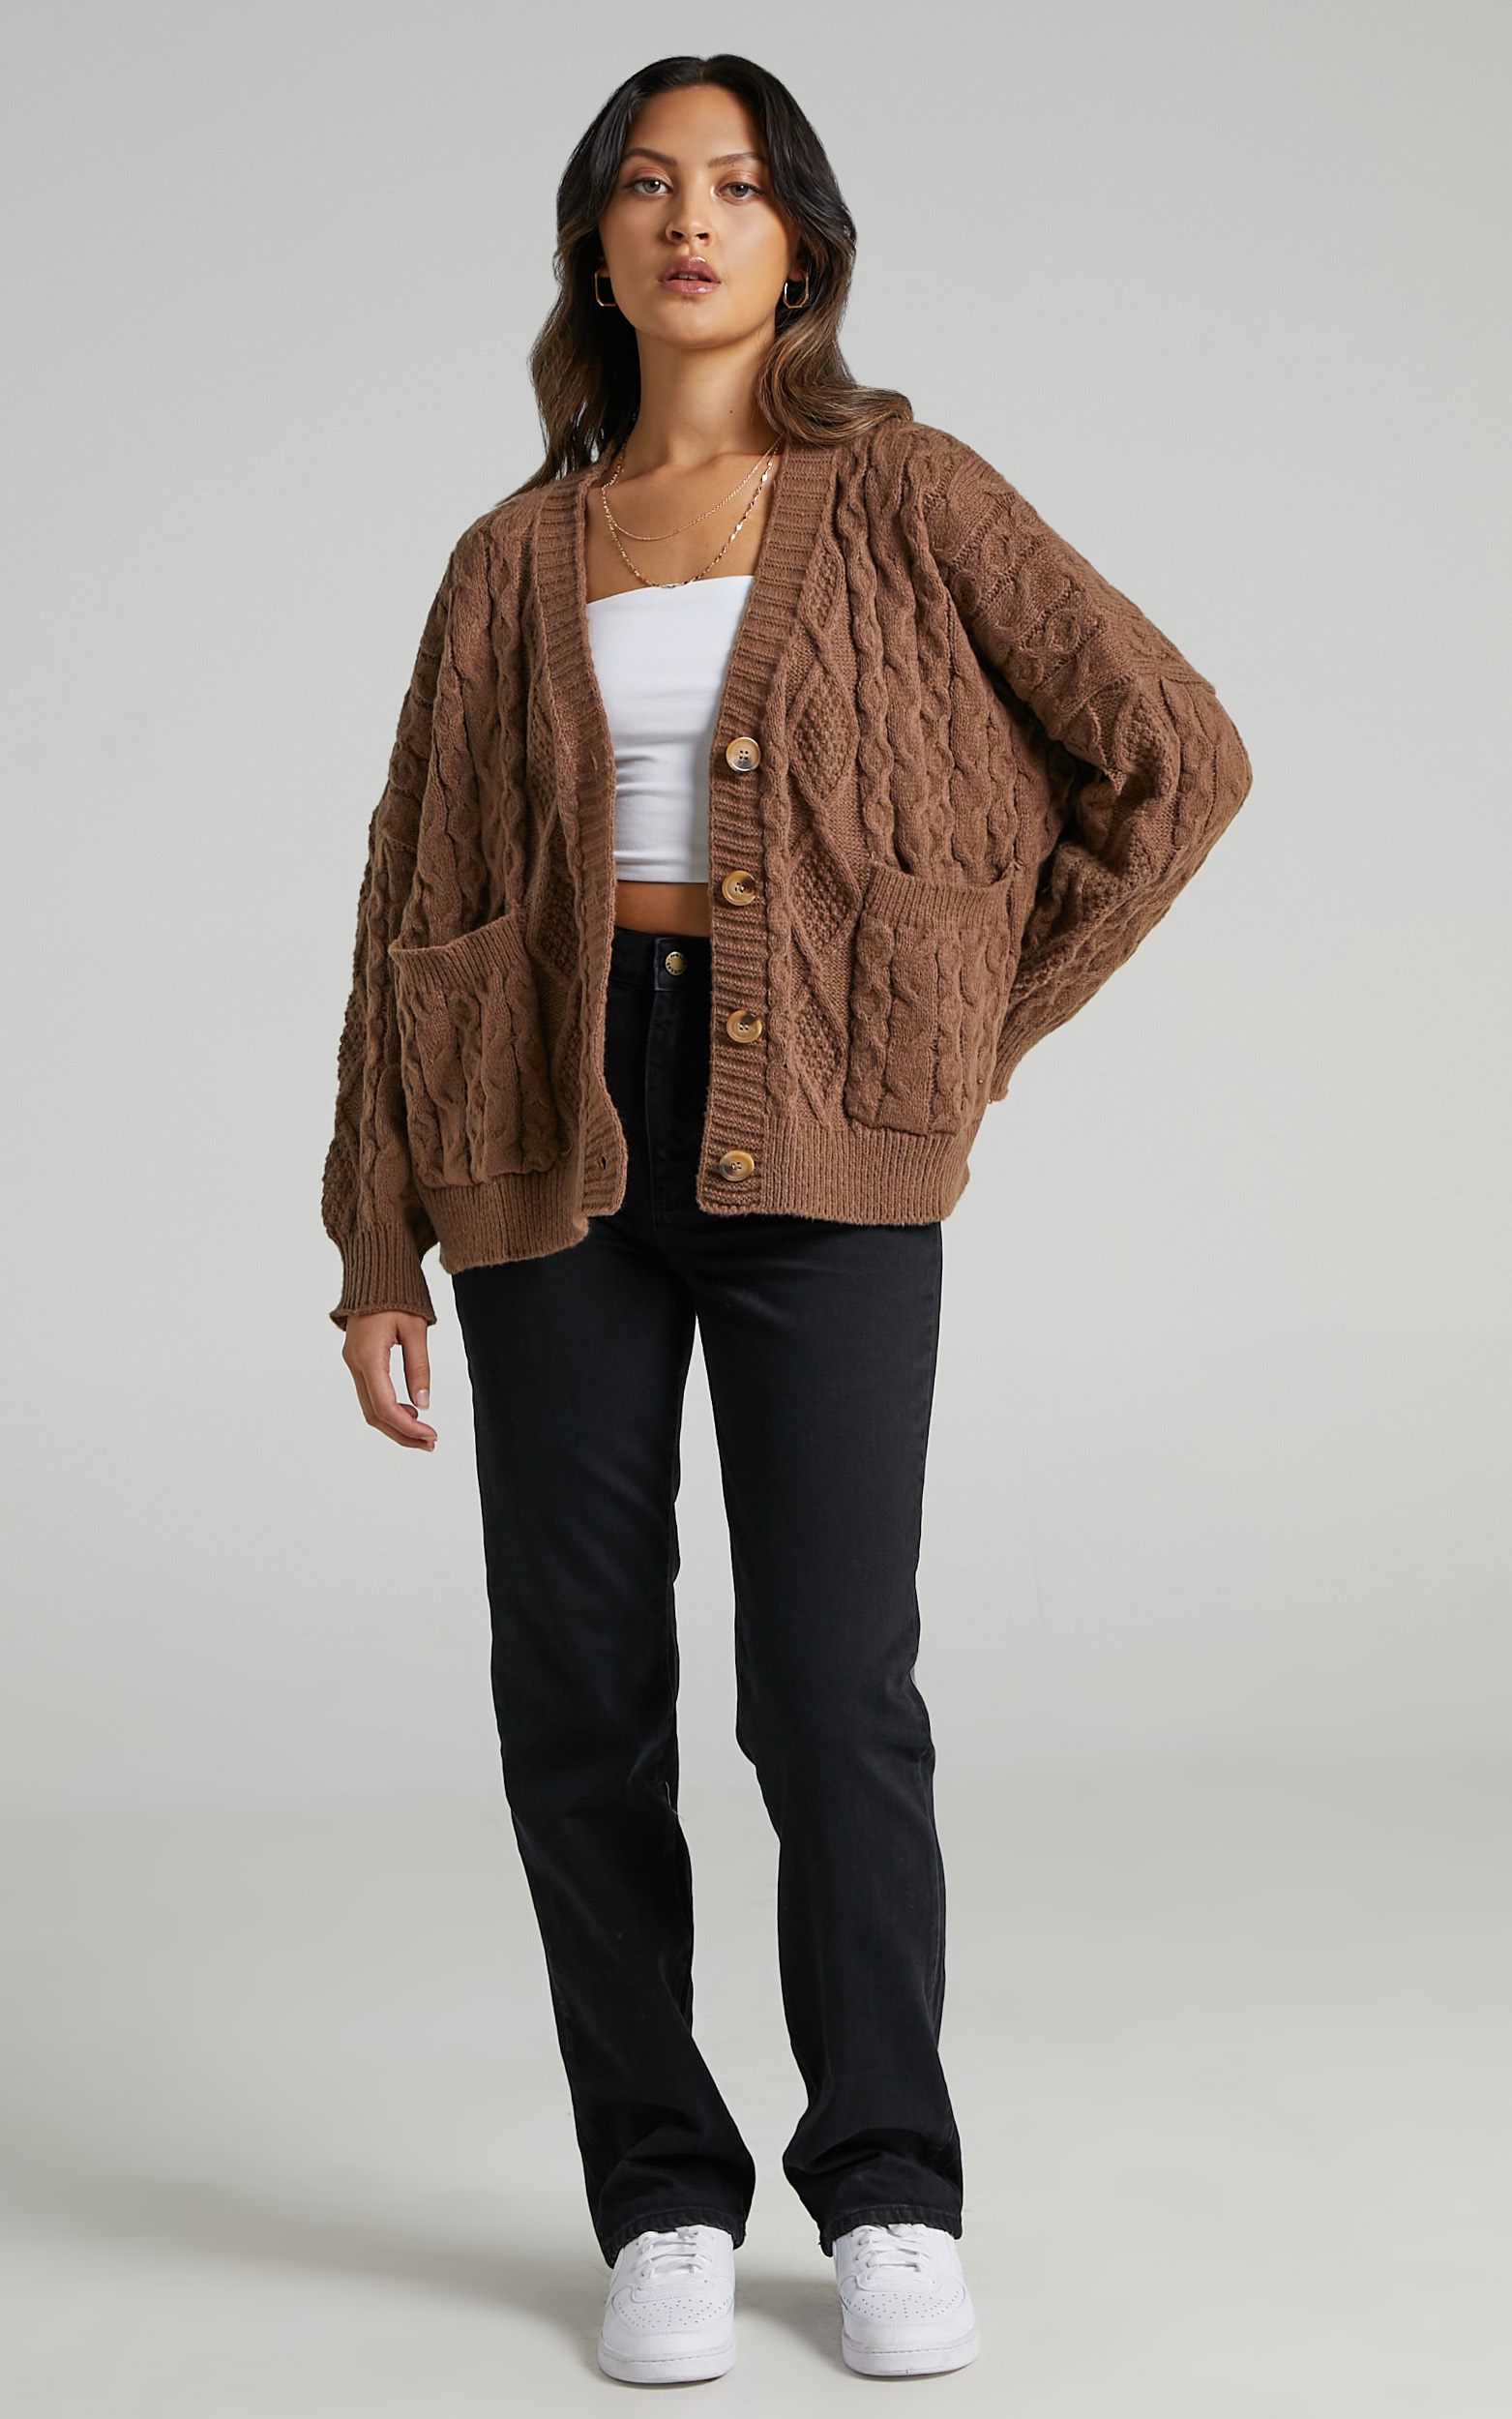 Betty Button Up Cable Knit Cardigan in Chocolate - L, BRN1, hi-res image number null